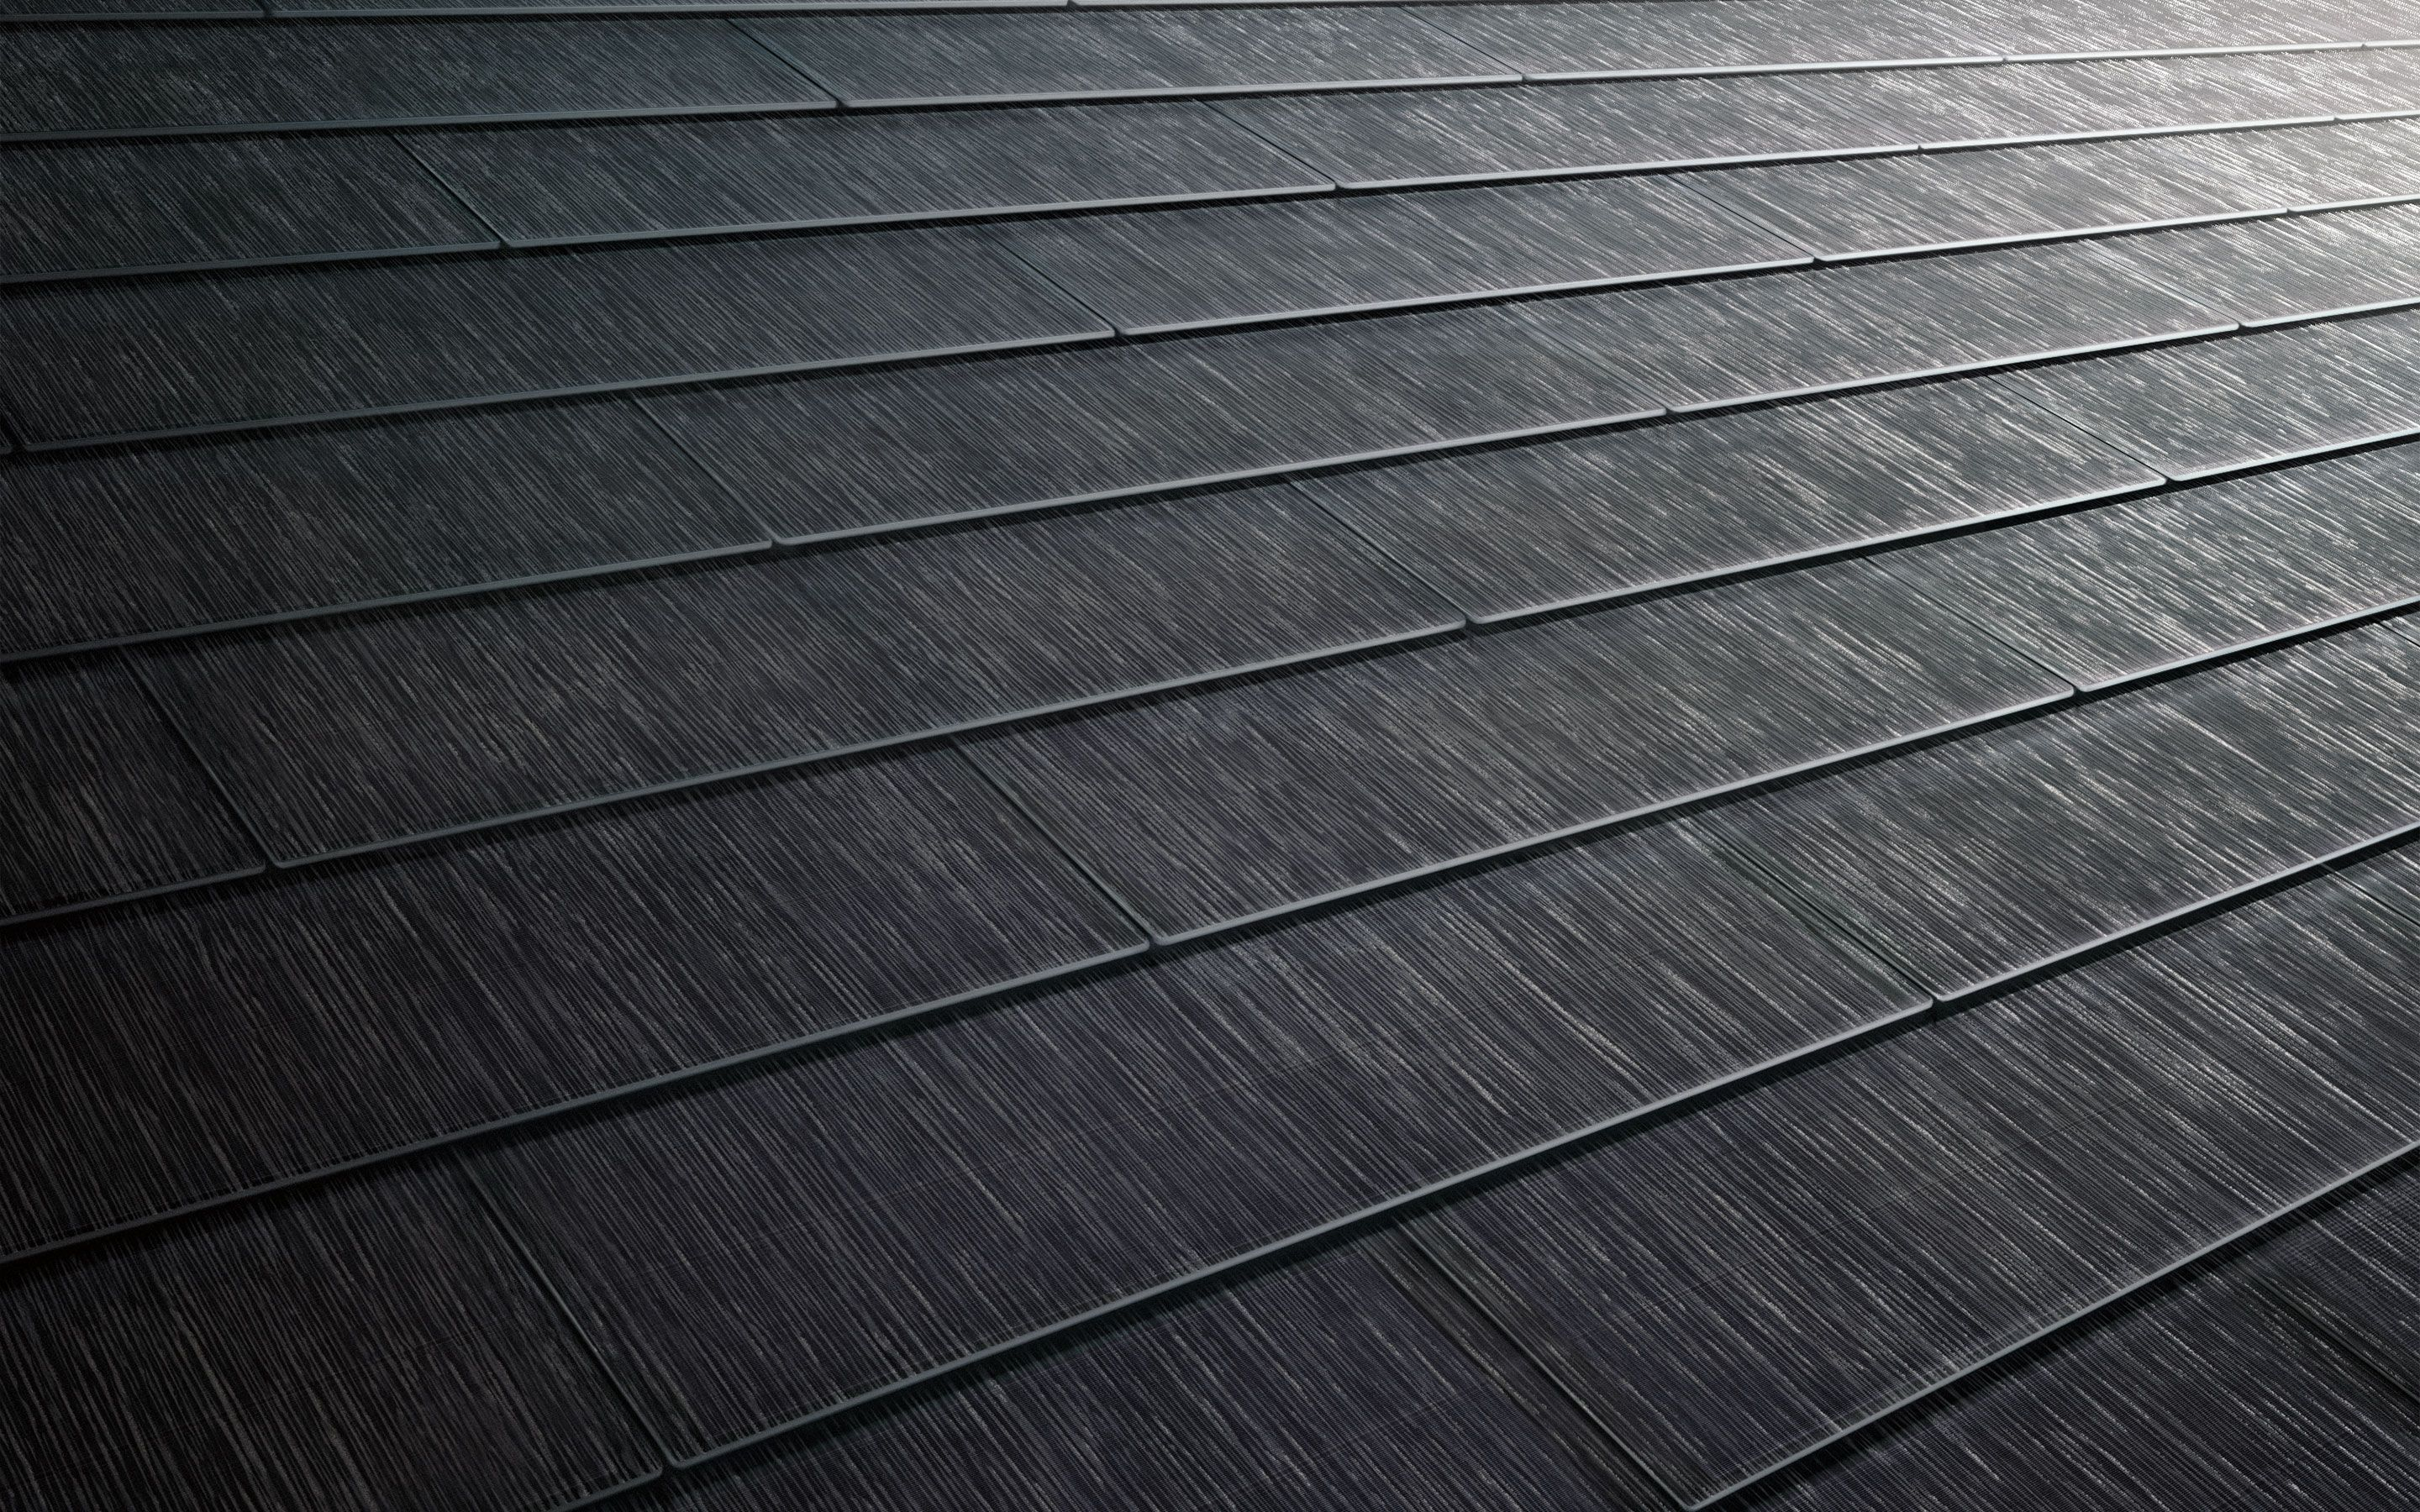 Solar Roof Replaces Your Existing Roof And Brings It To Life With Beautiful Solar Tiles That Can Power Your Home F In 2020 Tesla Solar Roof Solar Roof Tiles Solar Roof